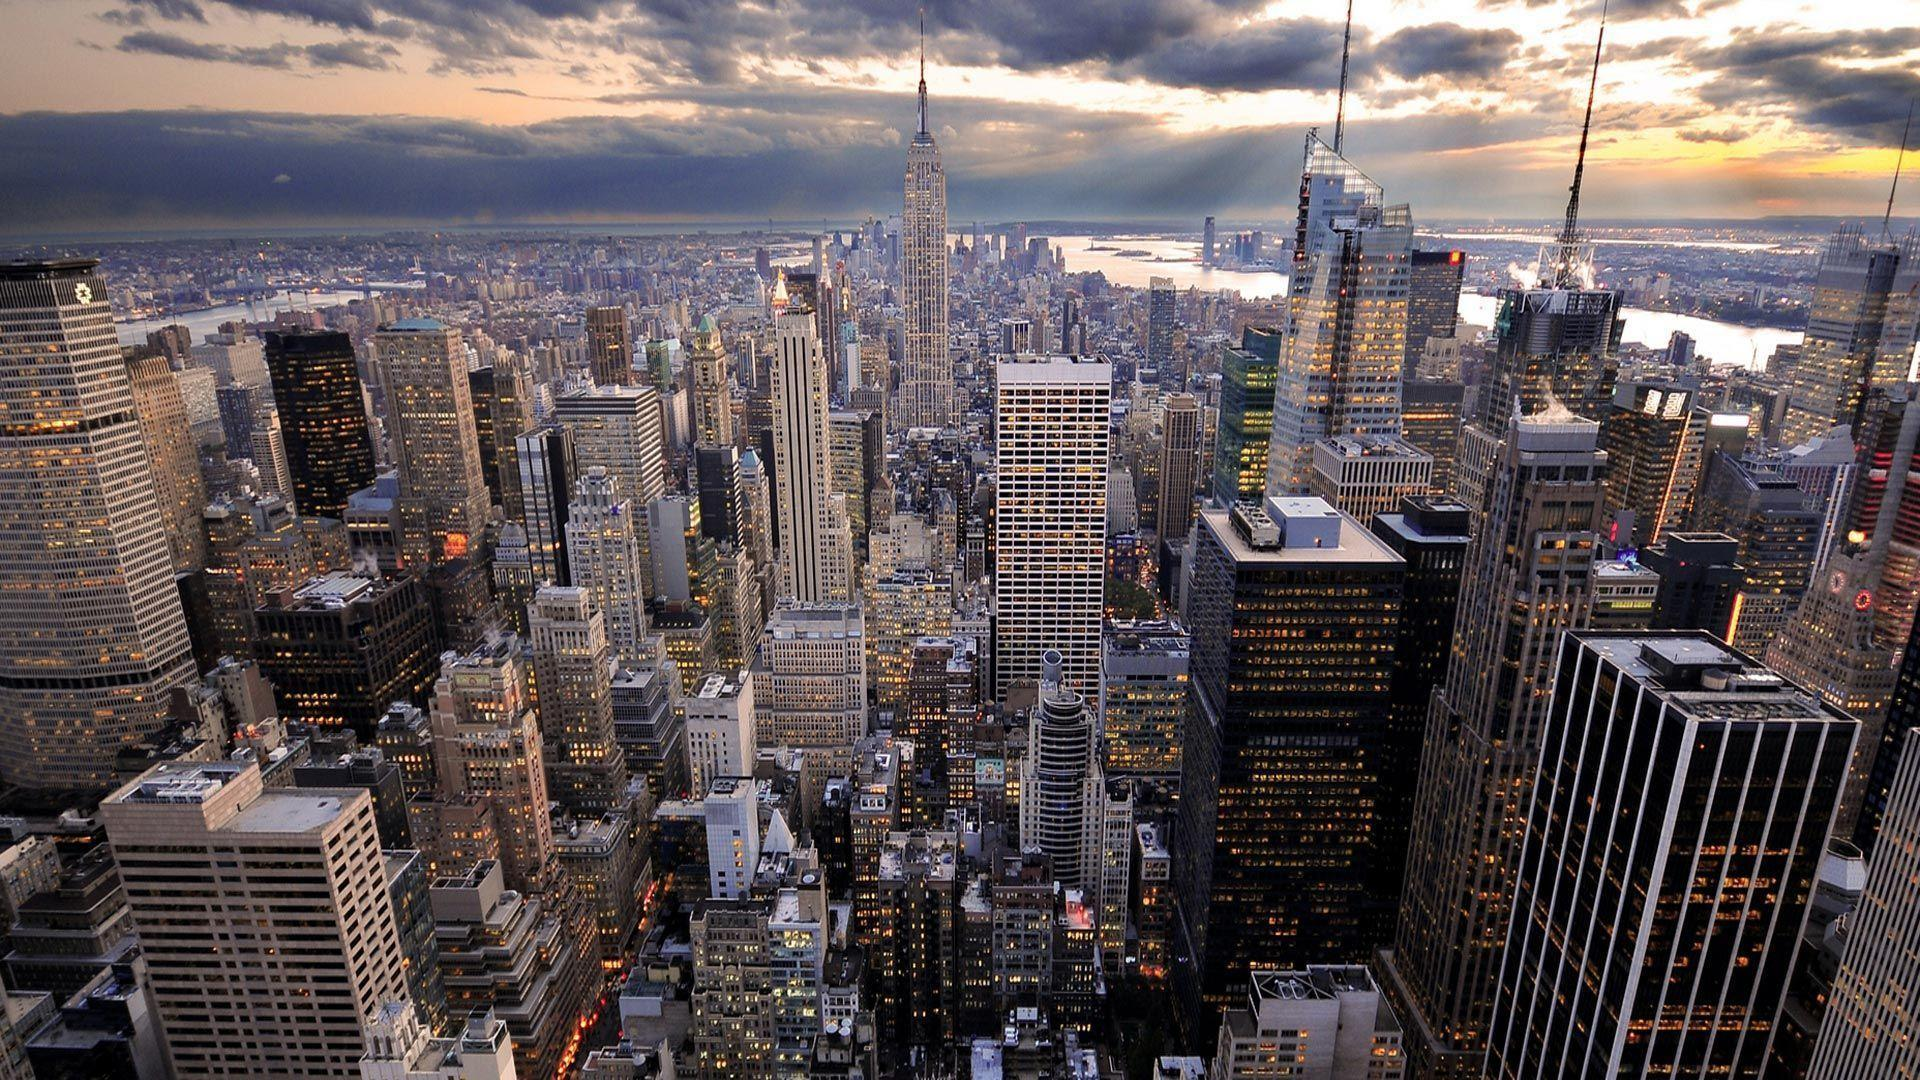 Free Download New York City Wallpapers Widescreen 1920x1080